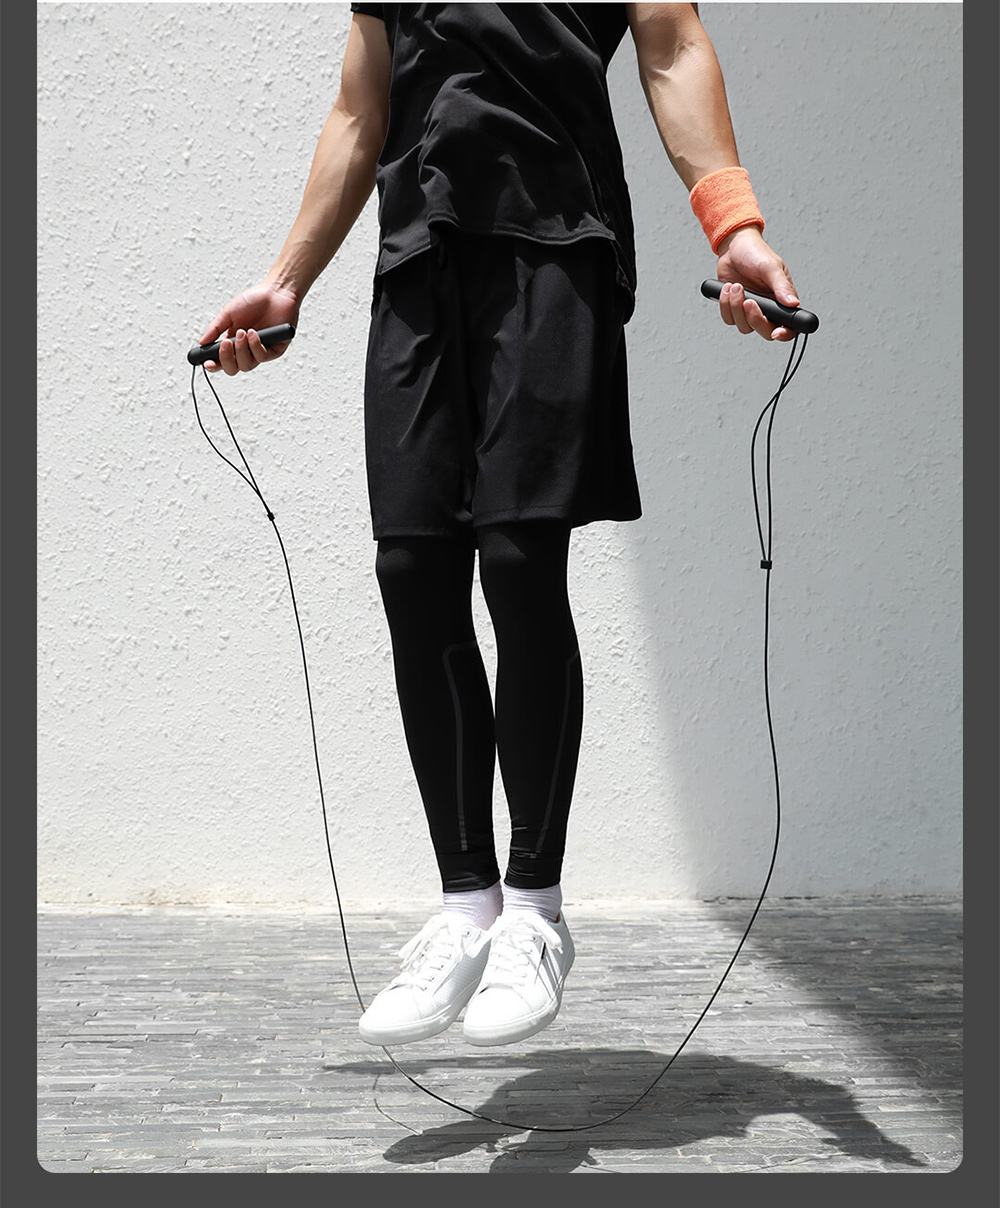 Smart Training Skipping Rope from Youpin - Black Calorie Consumption Comparison